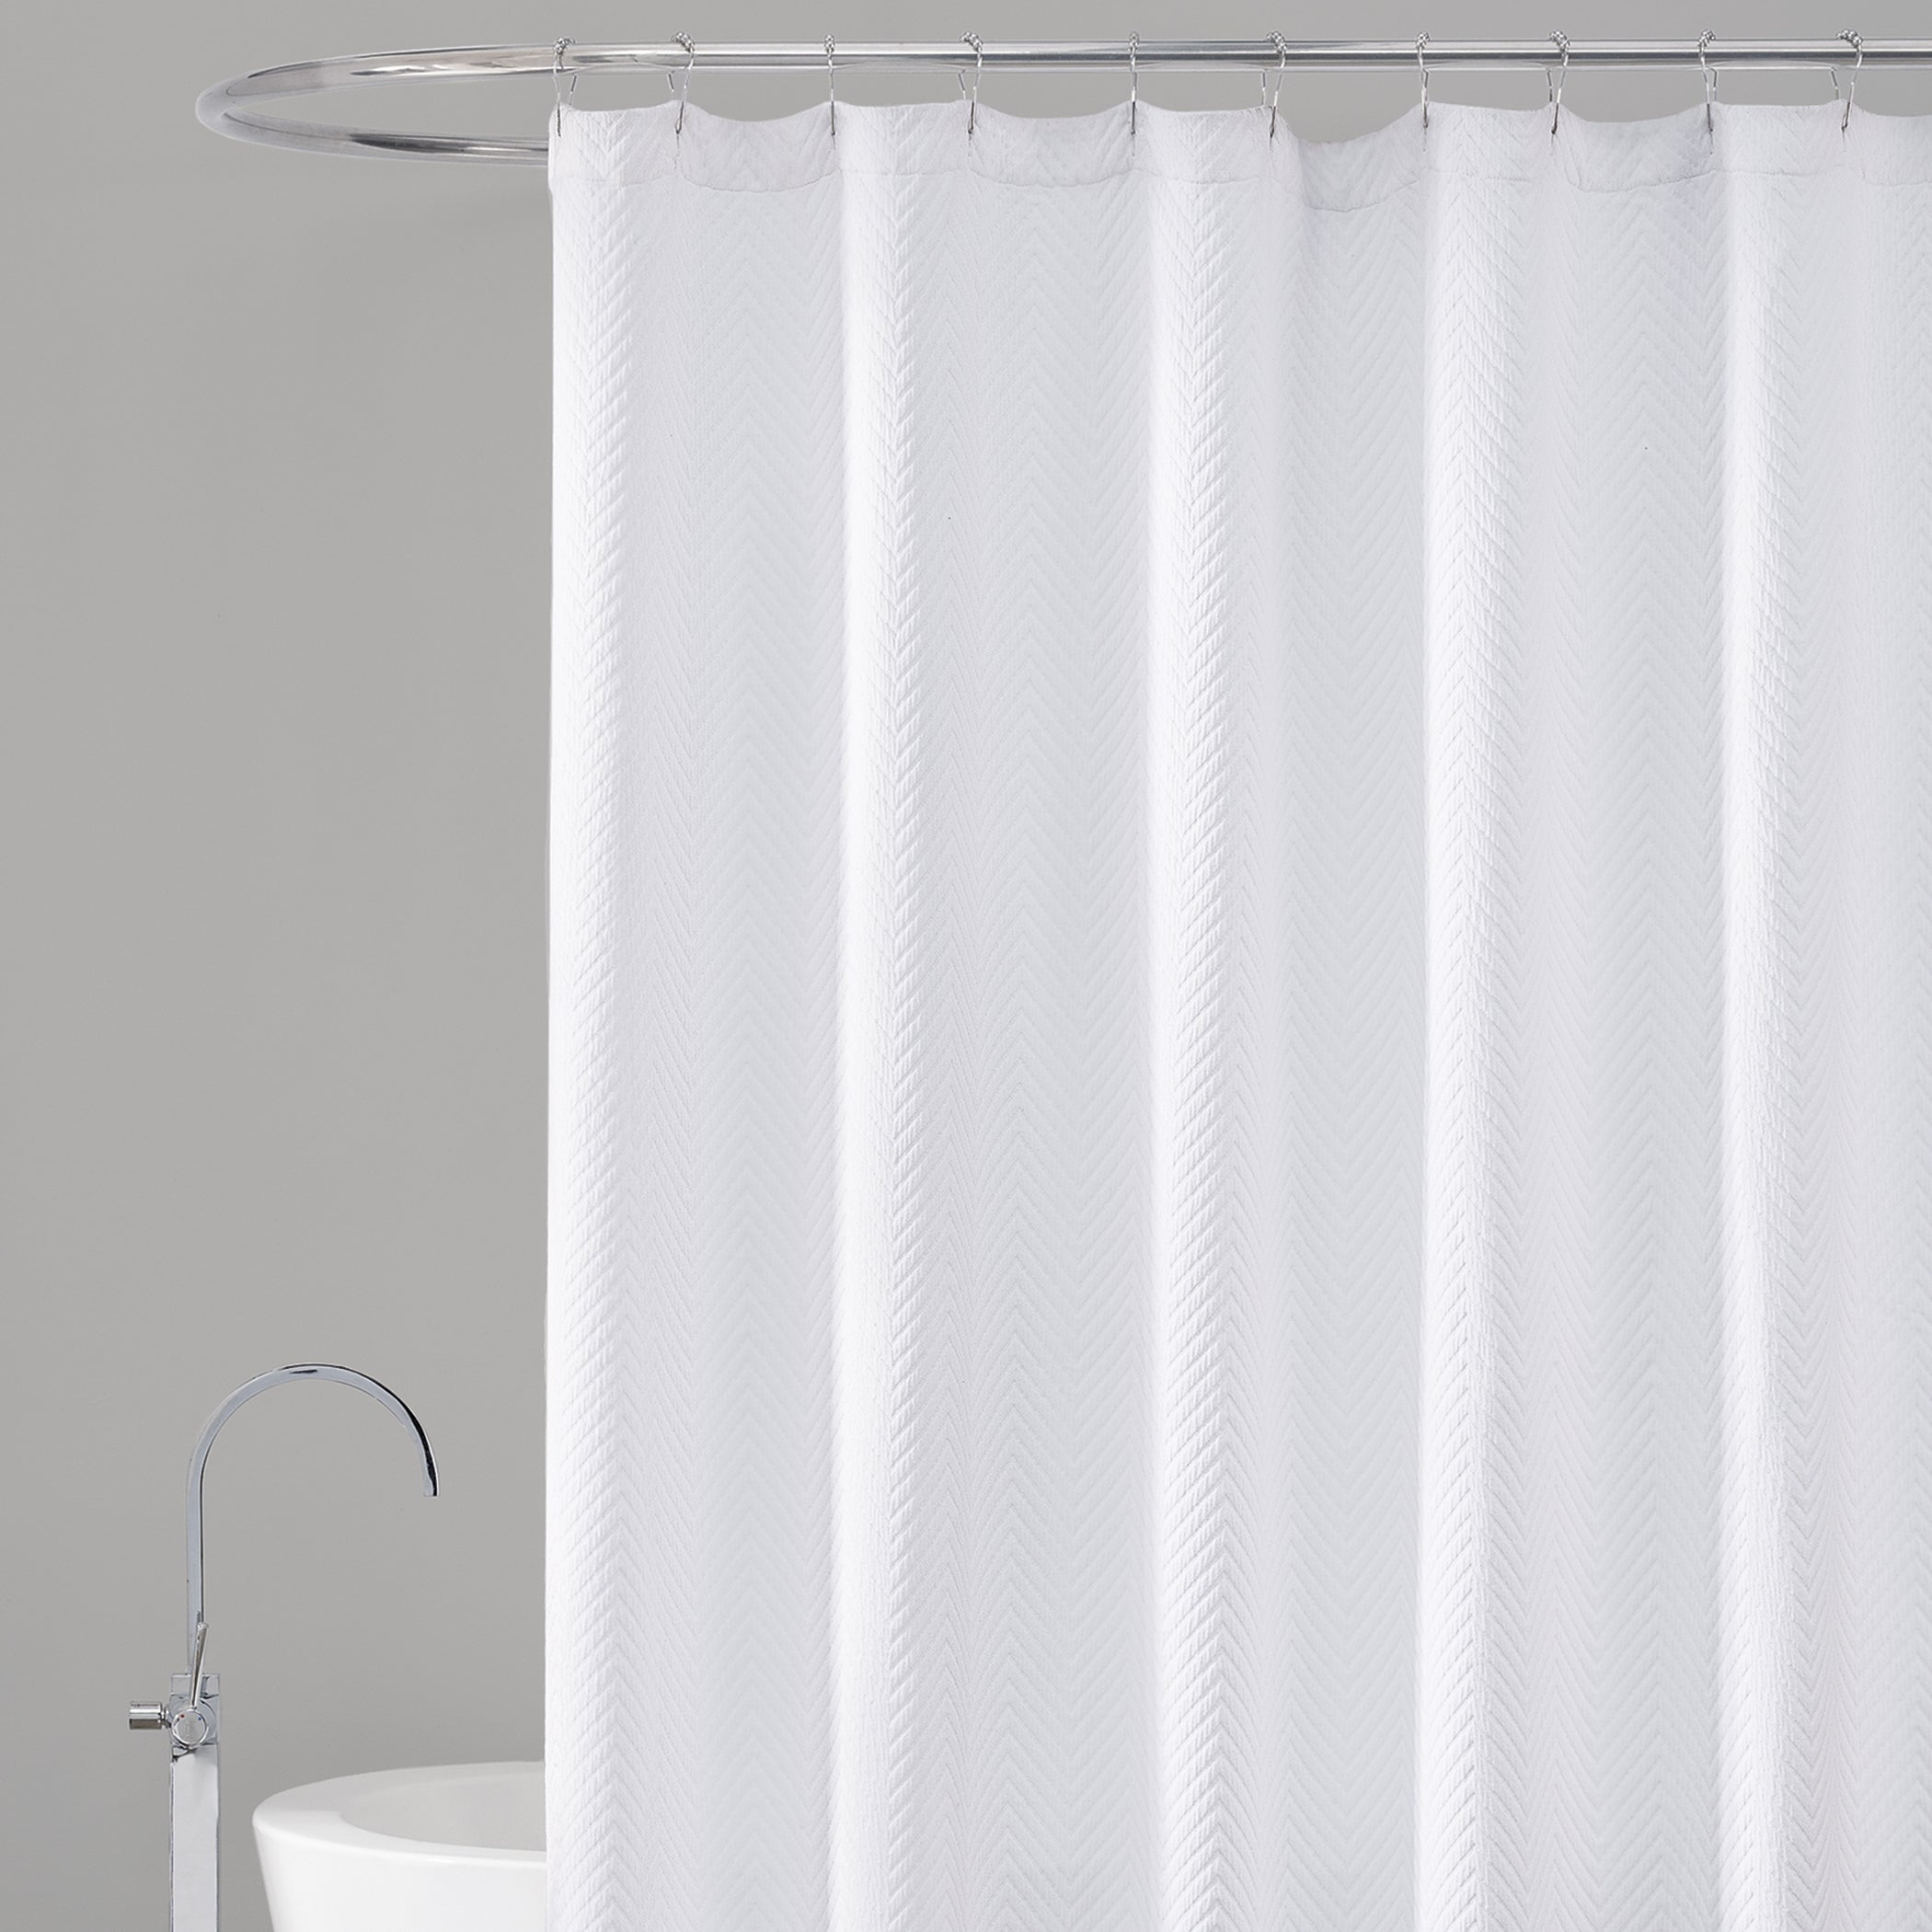 shower white newport waffle weave products furniturefresh curtain curtains